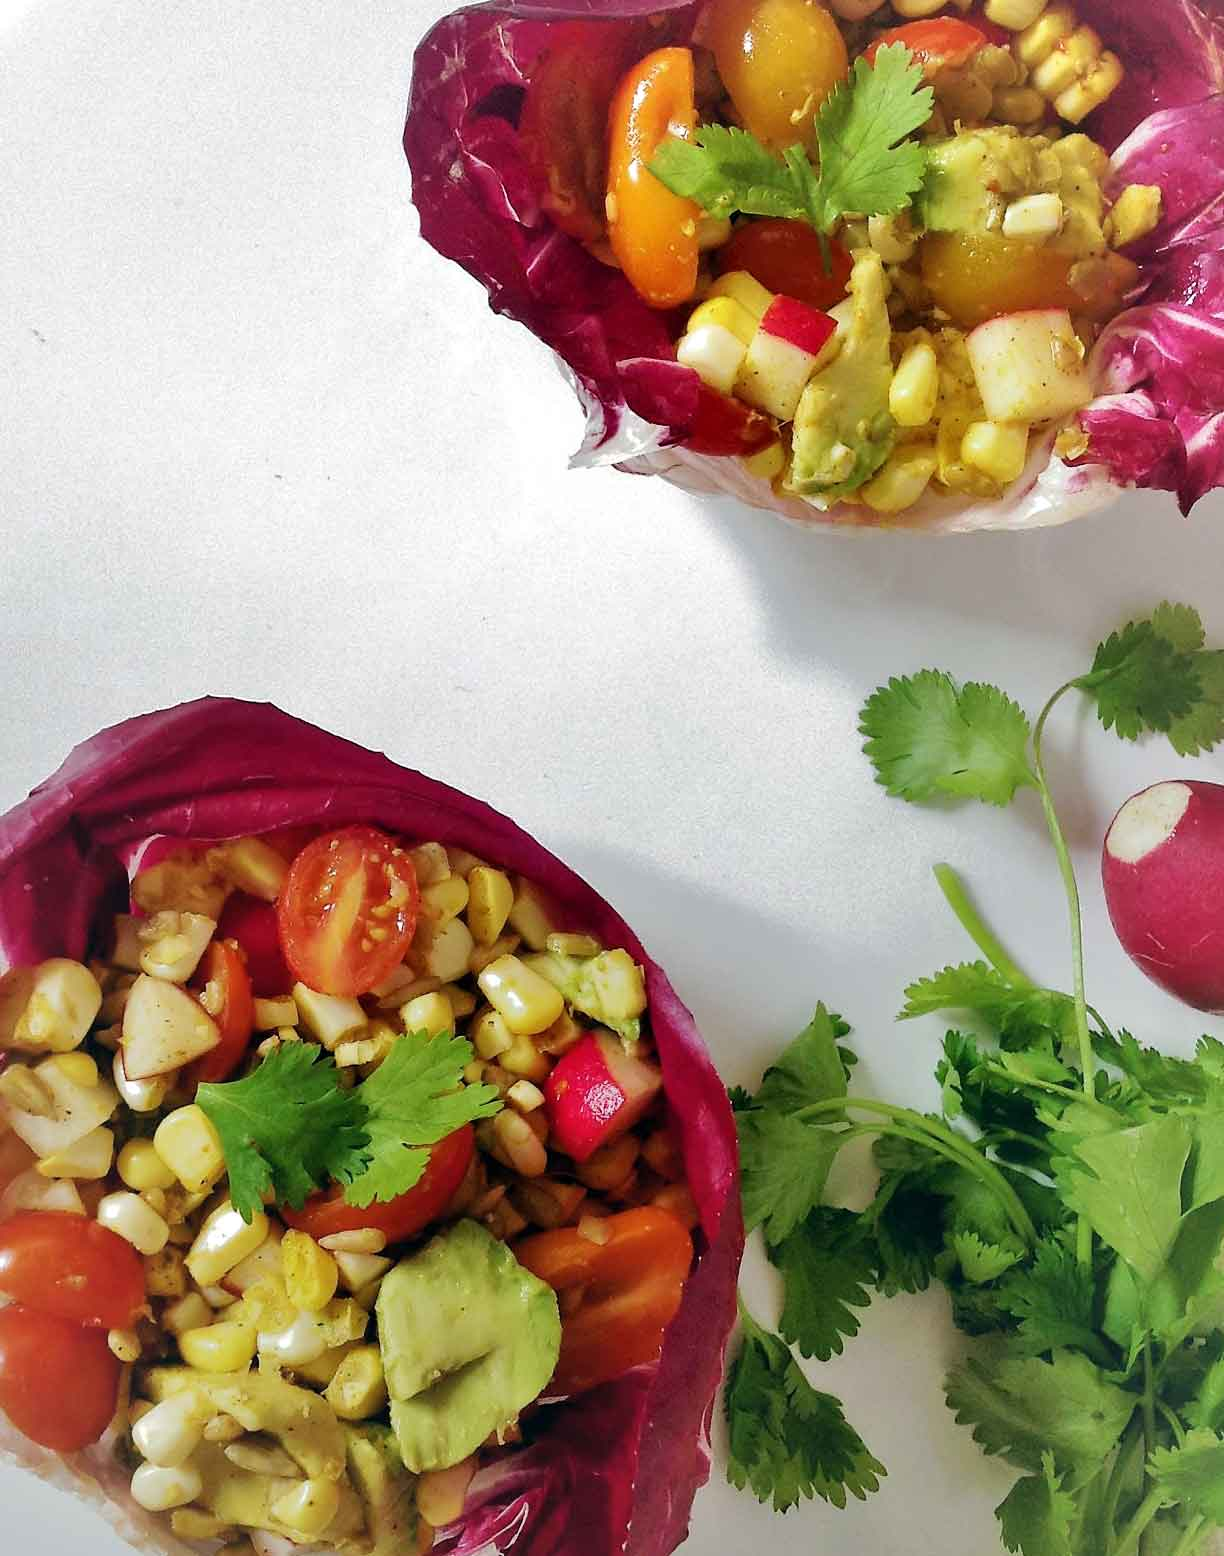 Easy lettuce wraps recipe for vegan Egyptian Spiced Avocado Corn Radish Salad